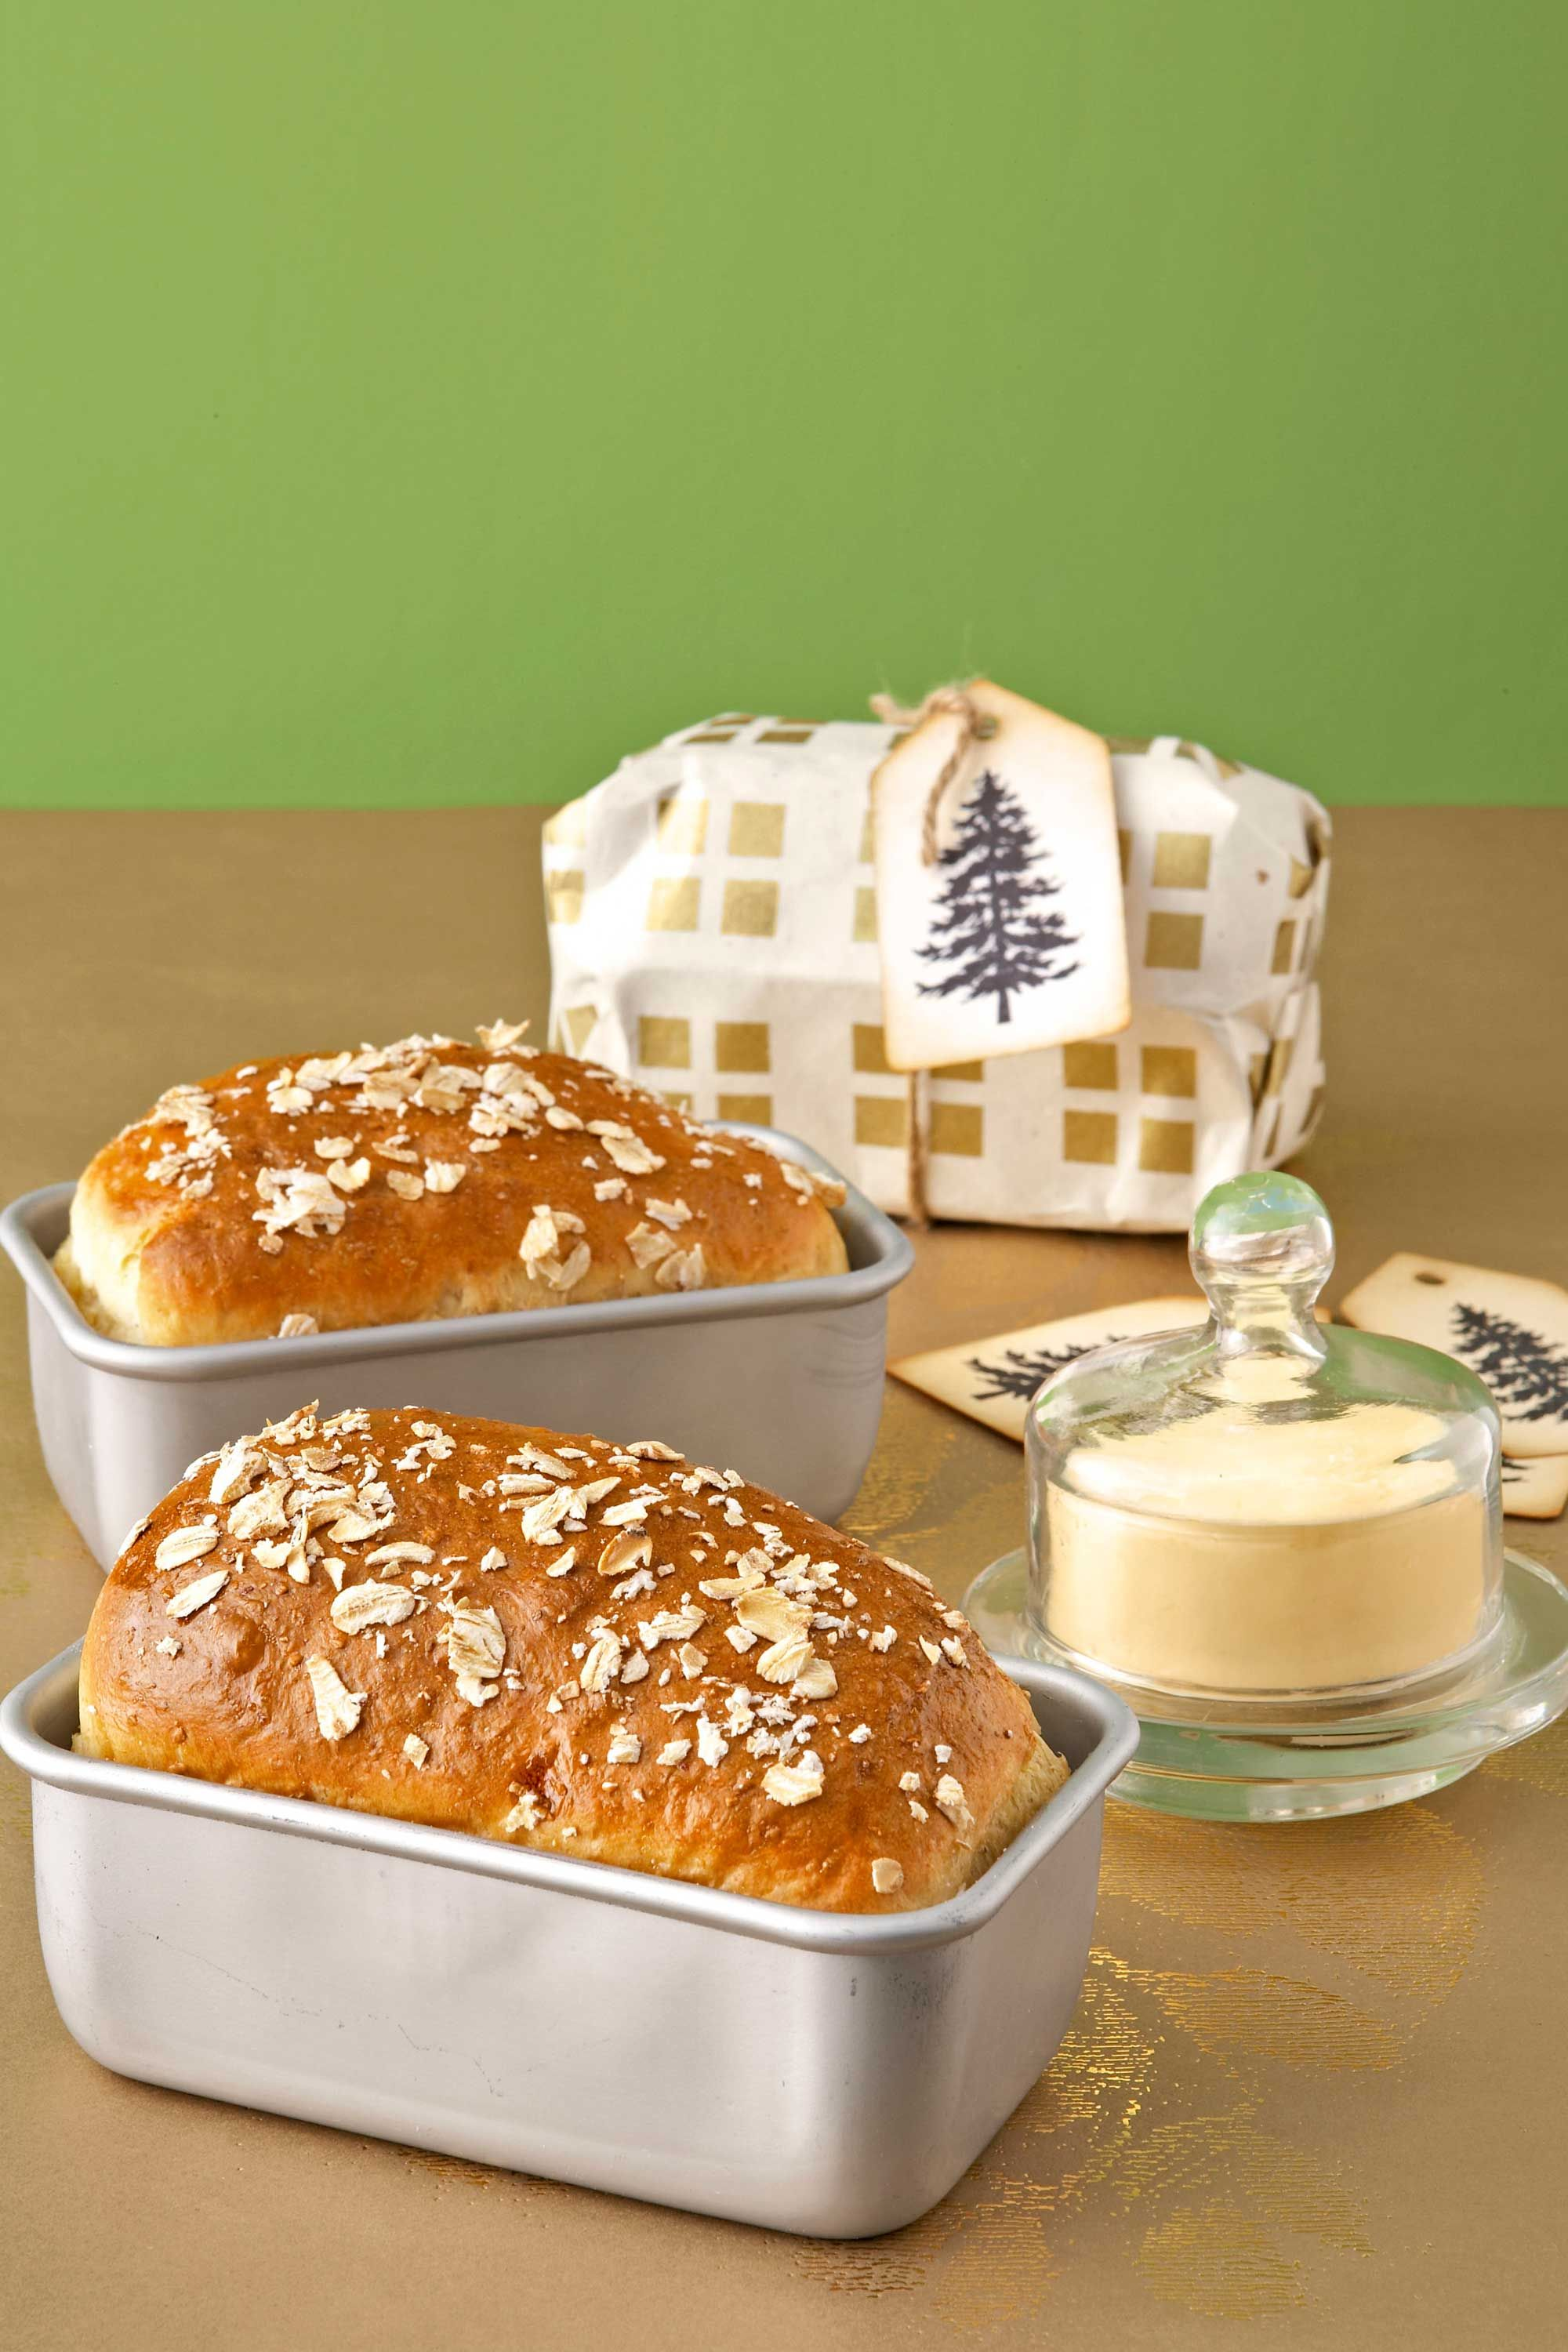 50 Homemade Food Gifts for the Holidays